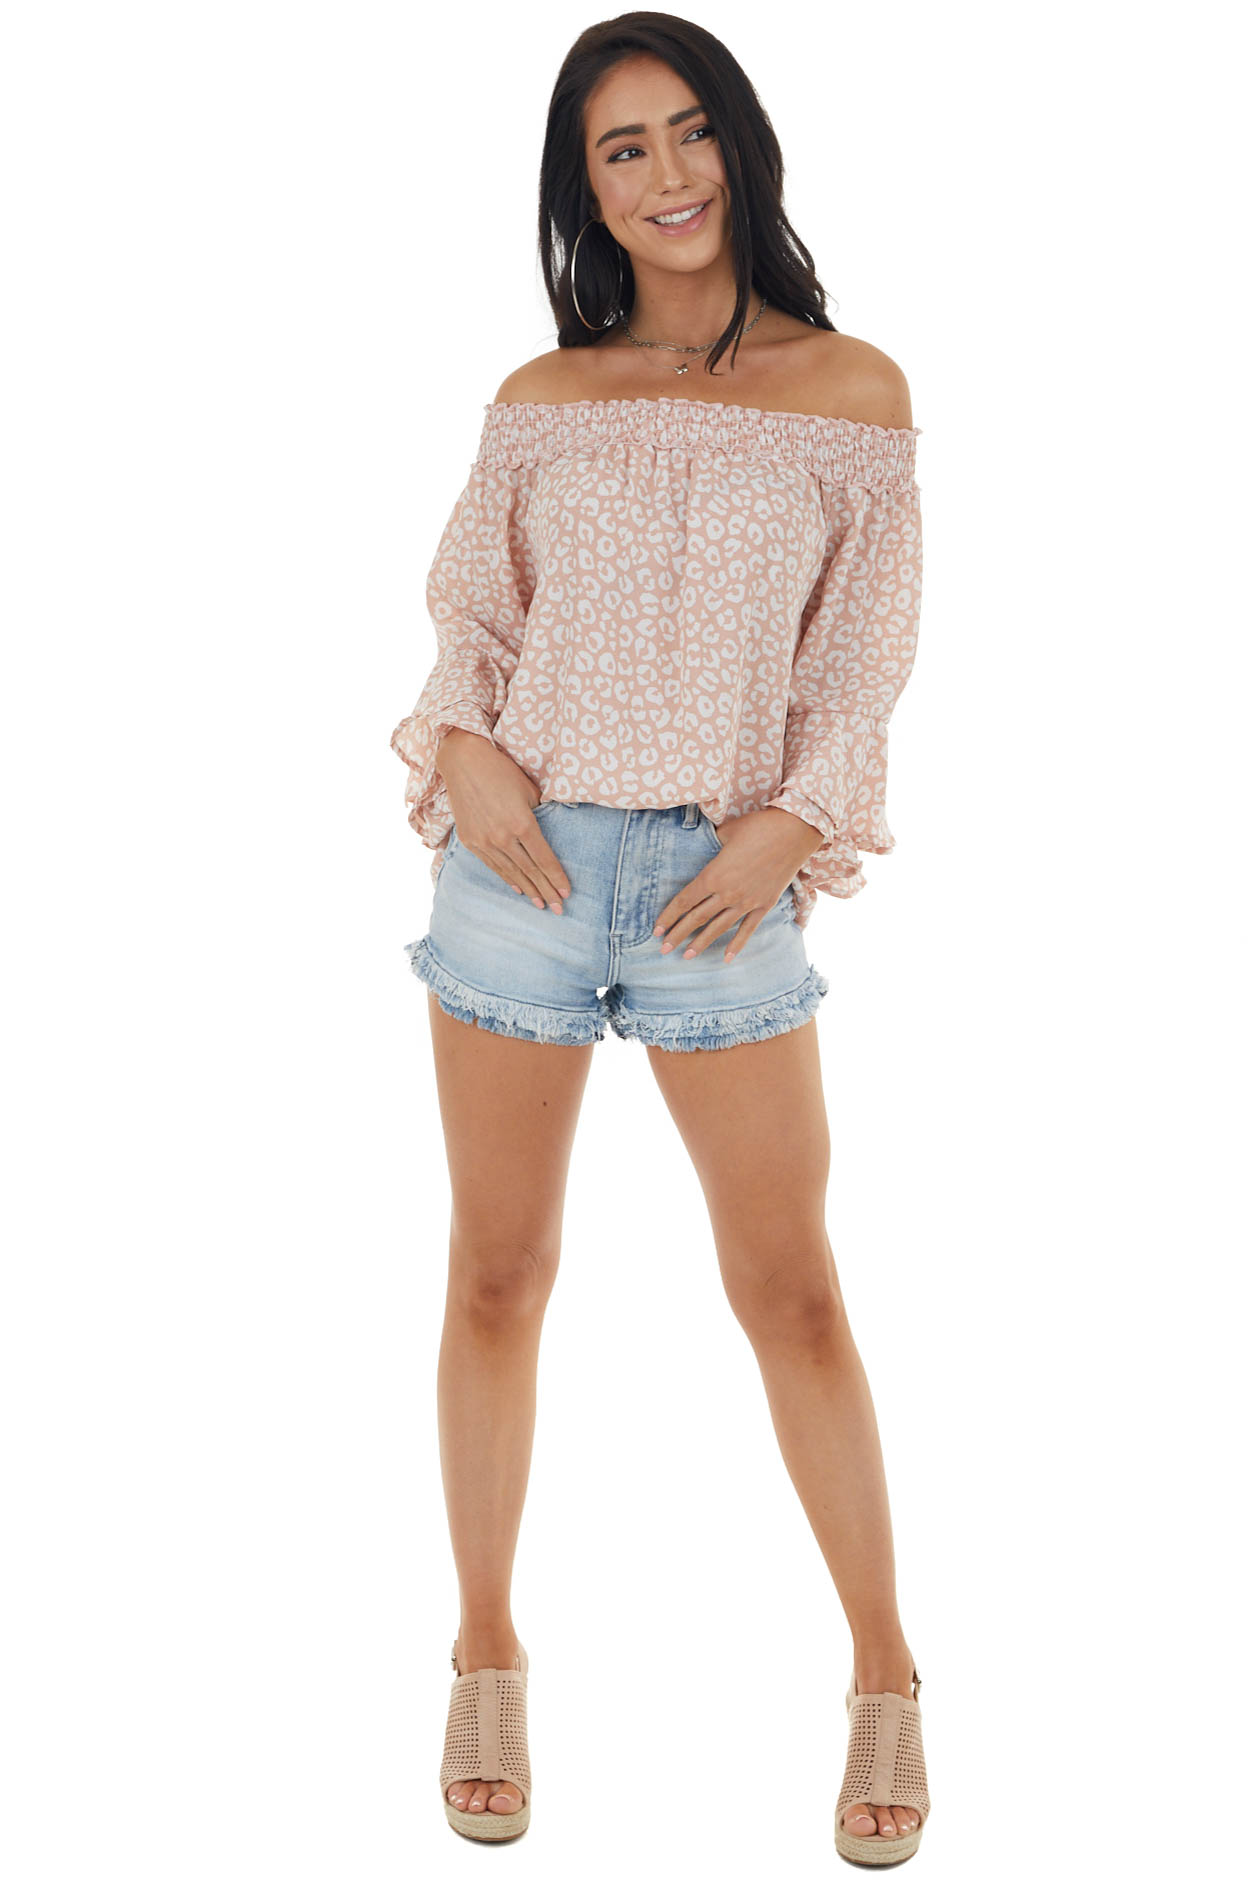 Dusty Blush and Ivory Leopard Print Off the Shoulder Blouse